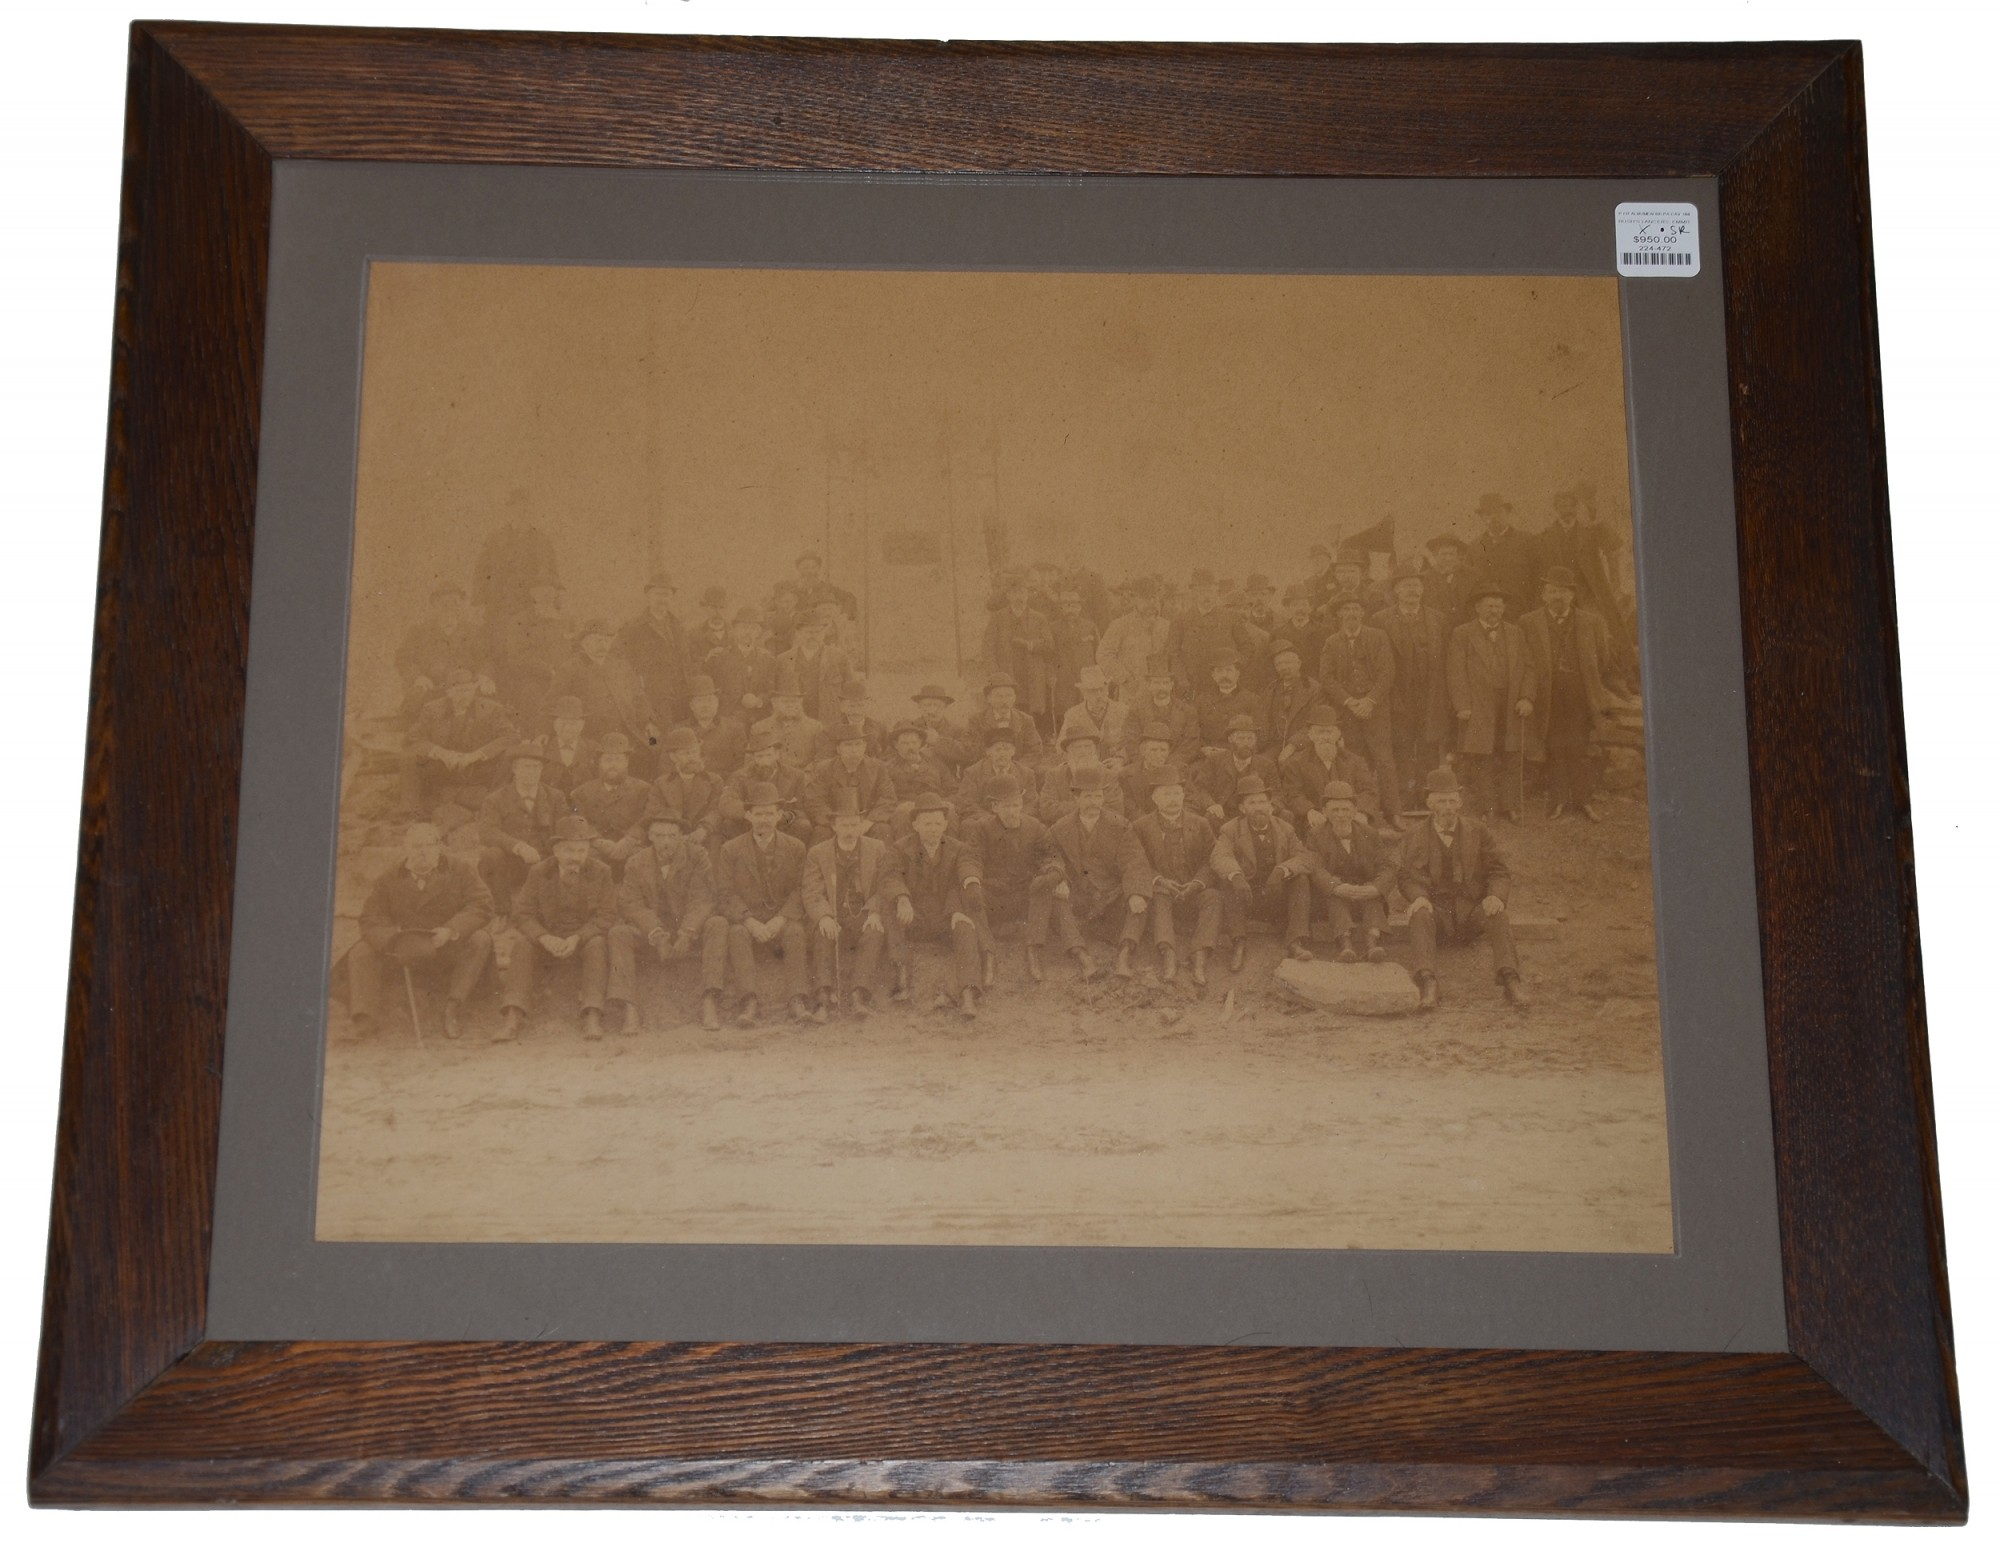 6th PENNSYLANIA CAVALRY, RUSH'S LANCERS, VETERANS PHOTO AT THEIR GETTYSBURG MONUMENT